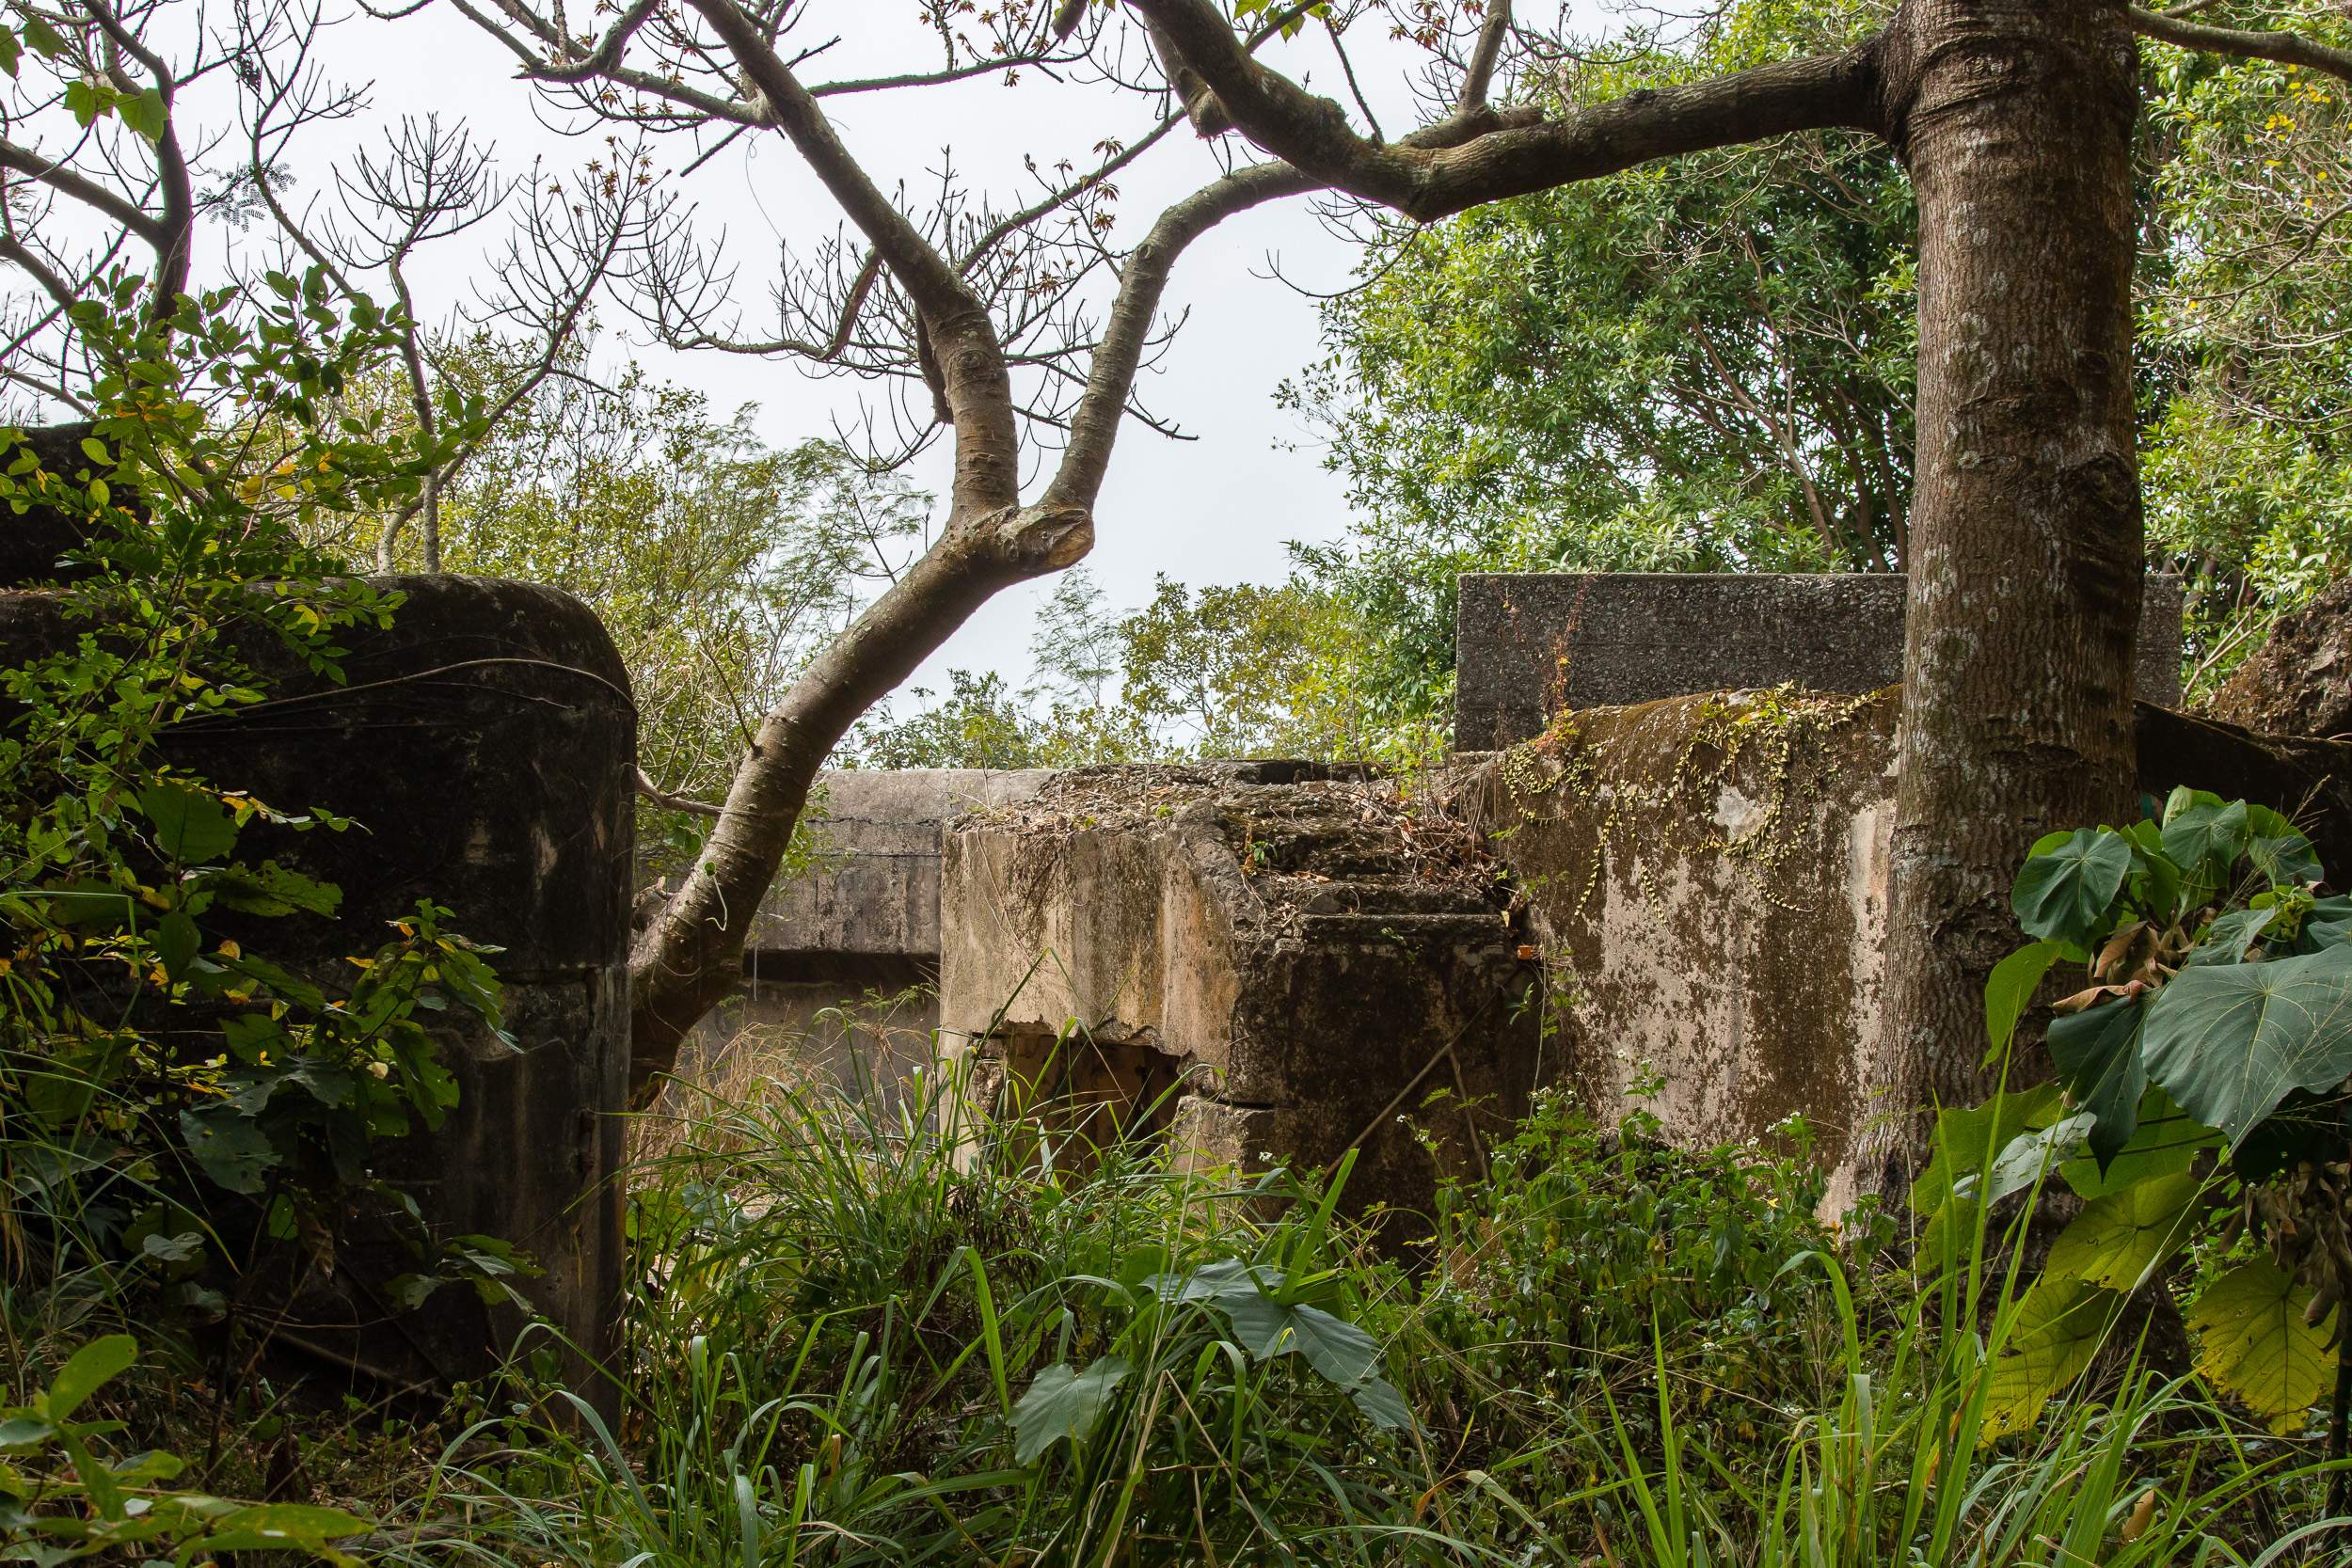 Mount Davis WW2 battery ruins, Hong Kong